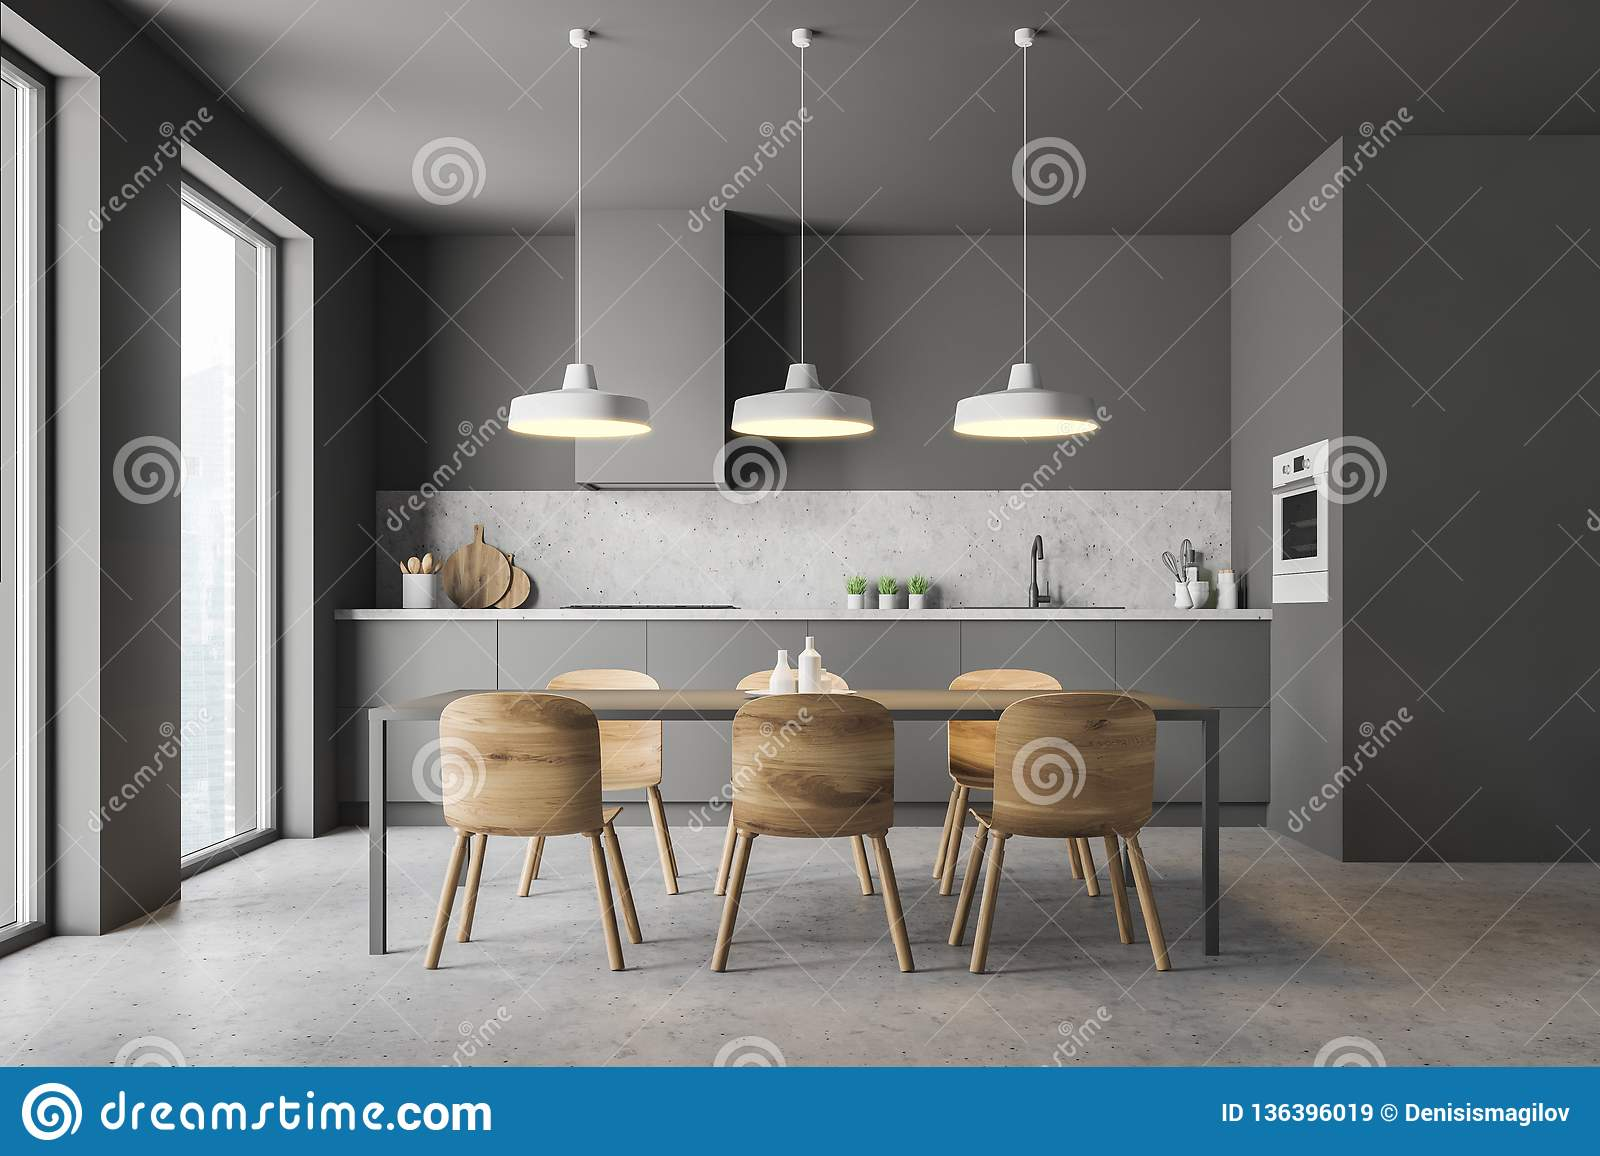 Gray Kitchen With Wooden Table Stock Illustration ...